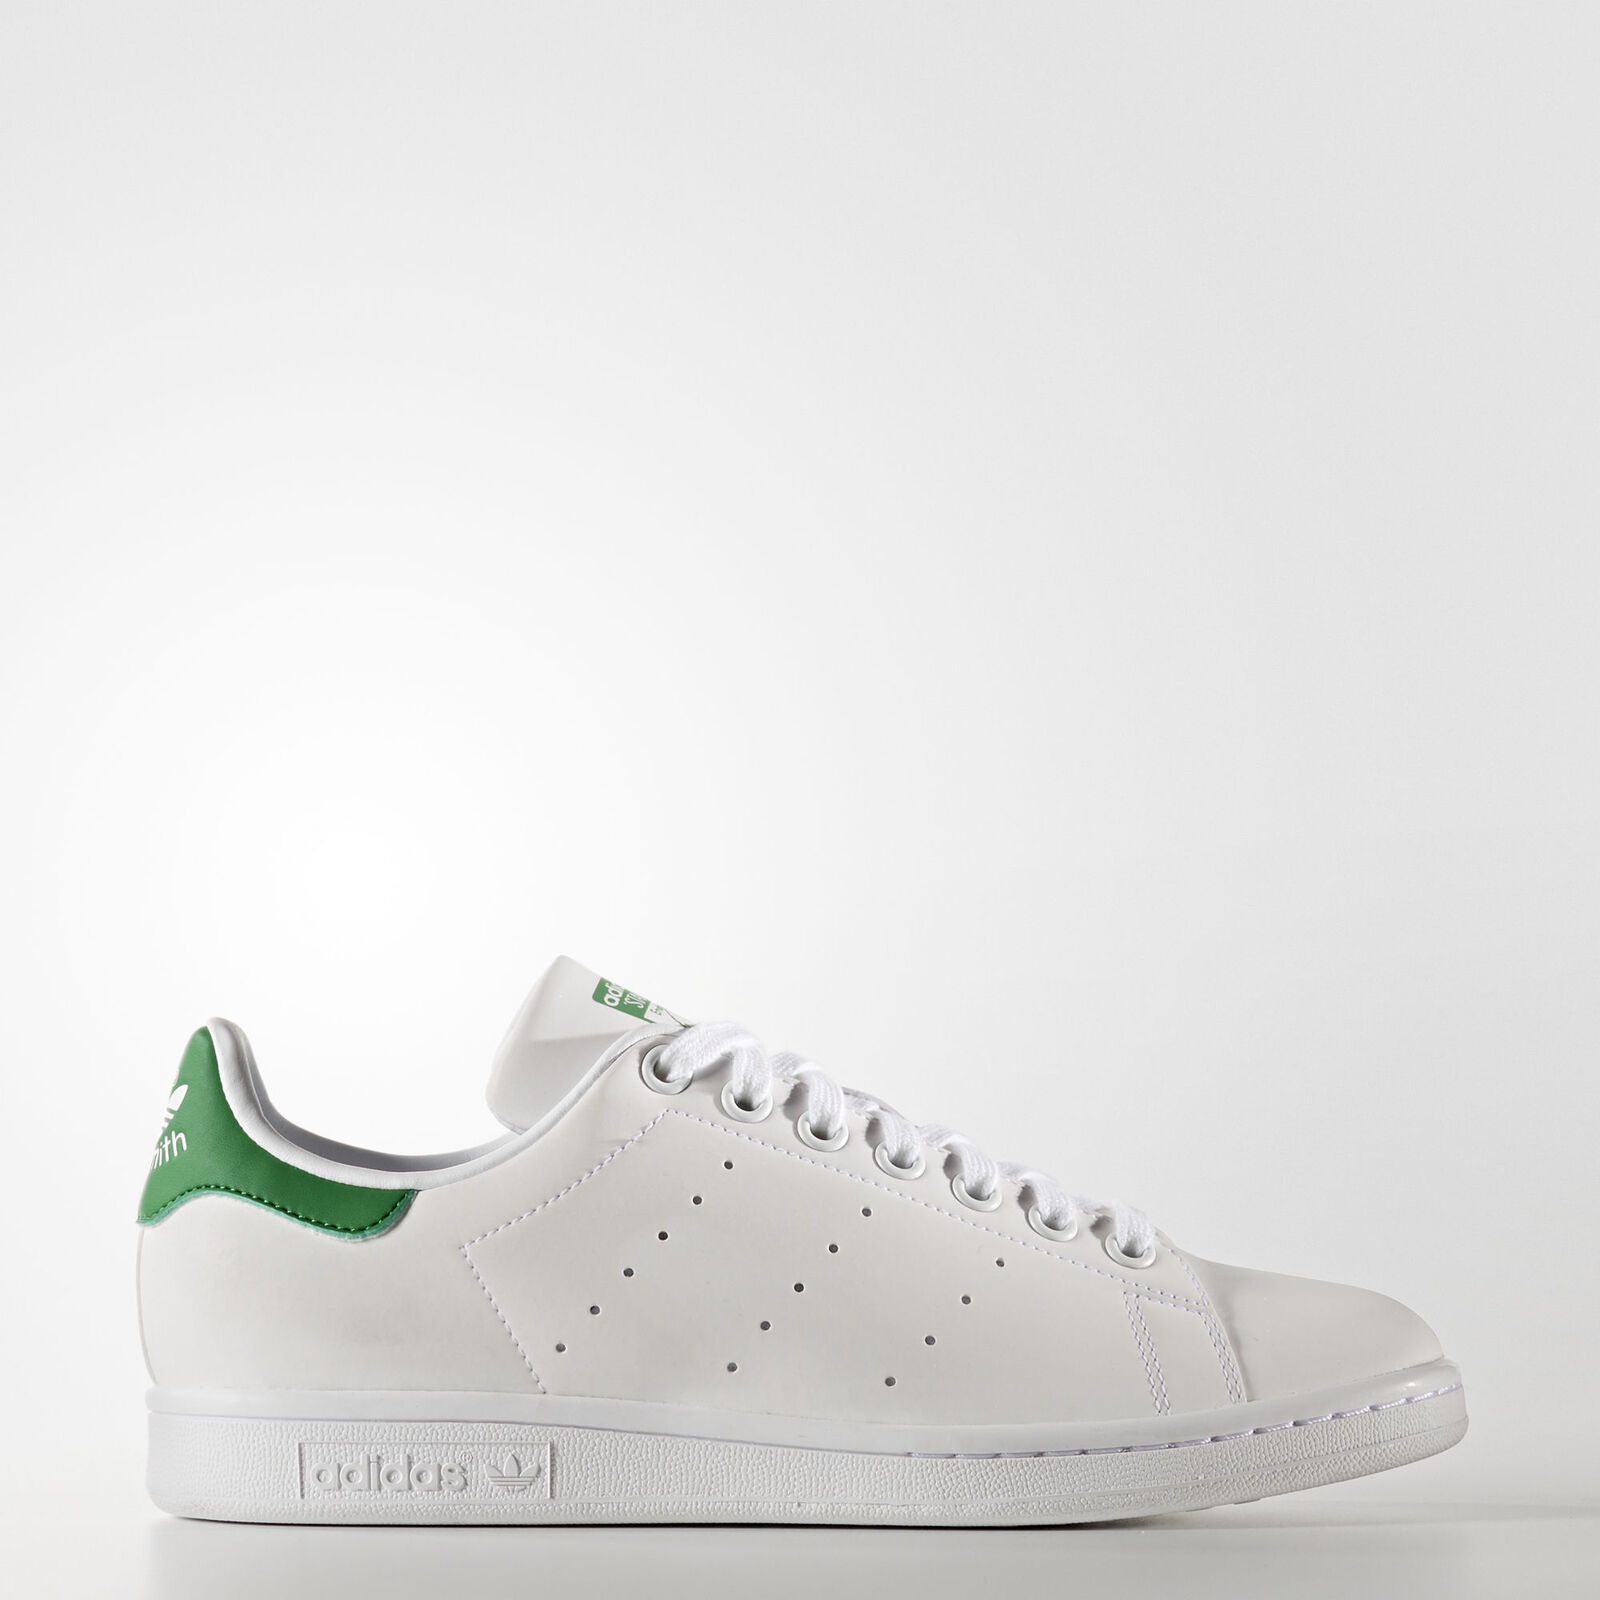 sports shoes 2d7a4 4bcca adidas stan smith velcro women adidas superstar women white